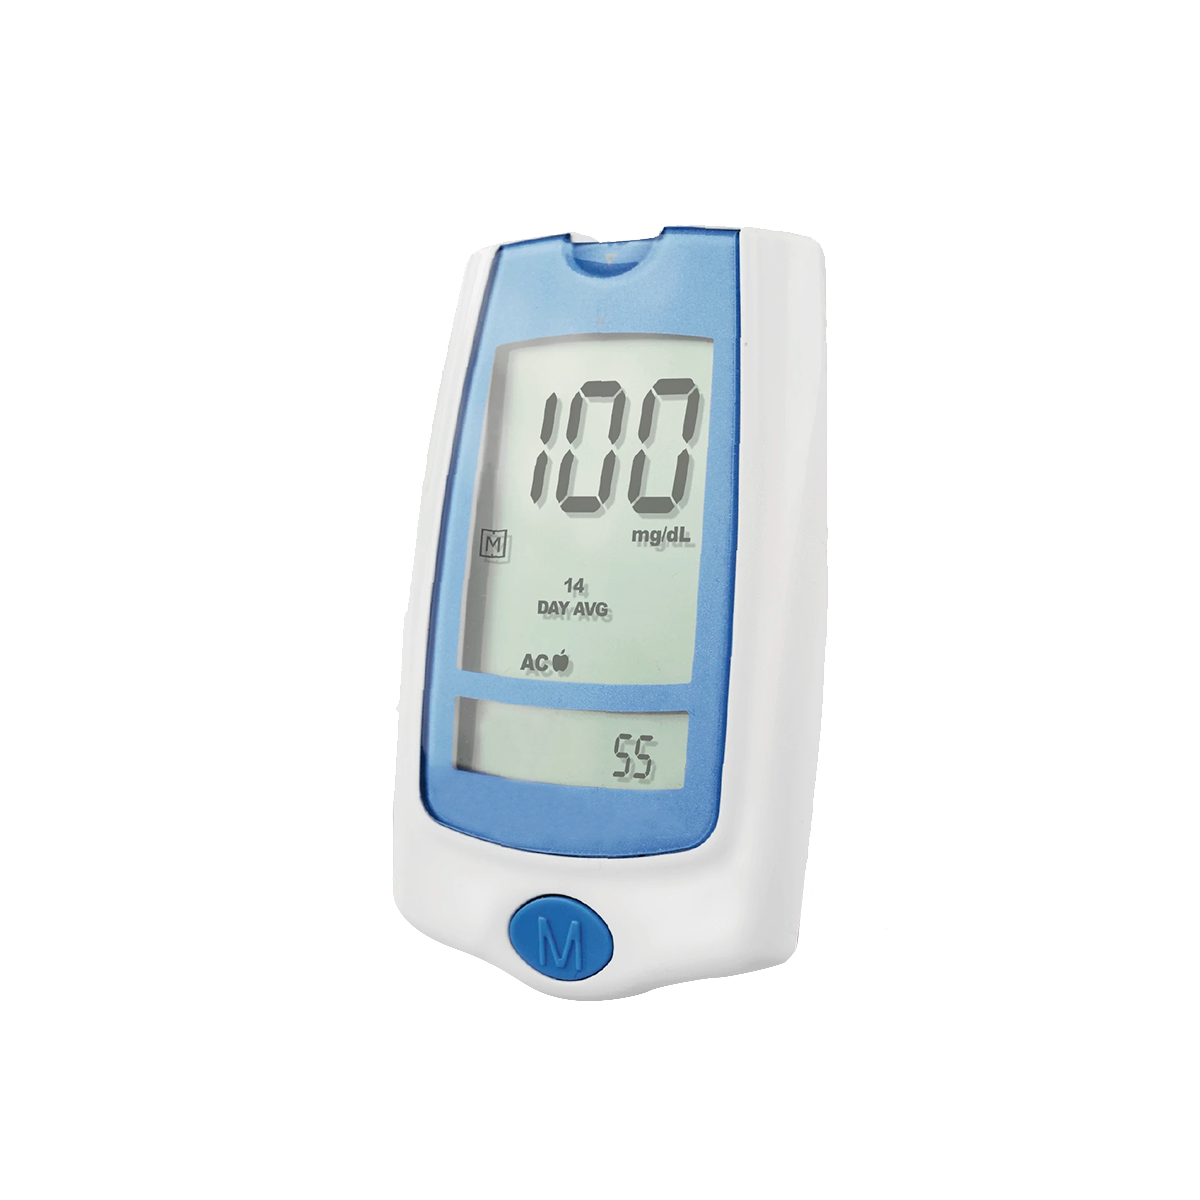 Veterinary blood glucose meters